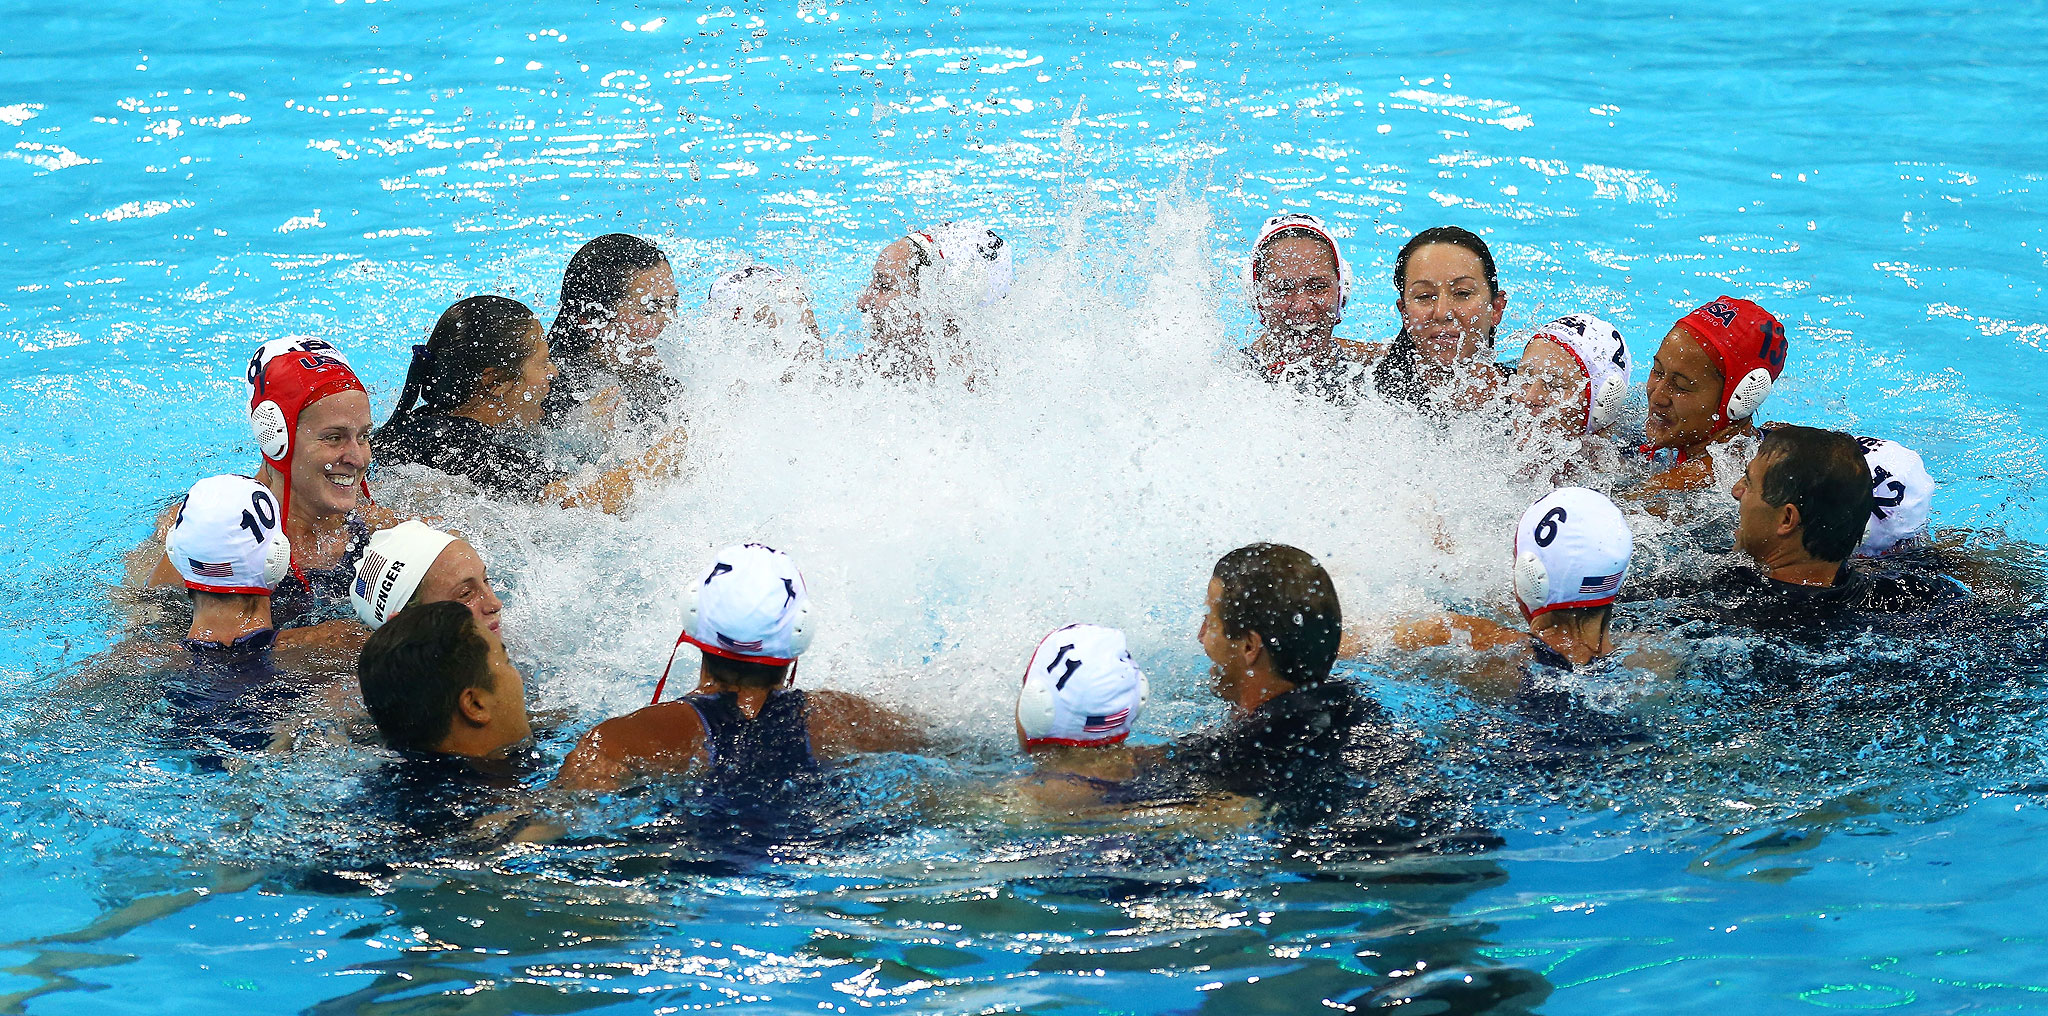 United States Water Polo